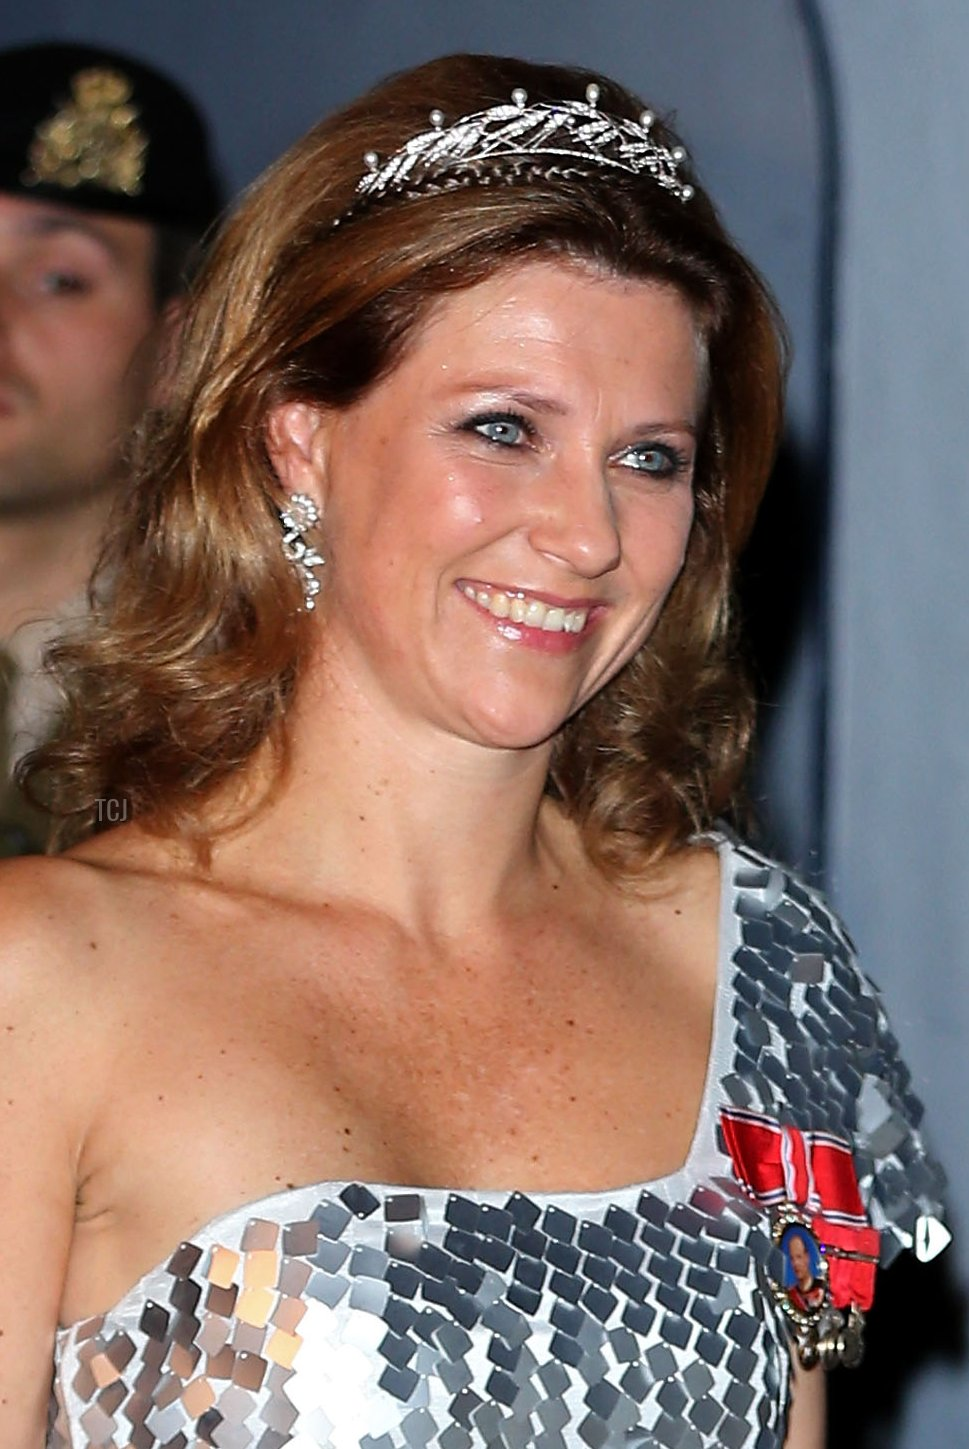 Princess Martha Louise of Norway attends the Gala dinner for the wedding of Prince Guillaume Of Luxembourg and Stephanie de Lannoy at the Grand-ducal Palace on October 19, 2012 in Luxembourg, Luxembourg